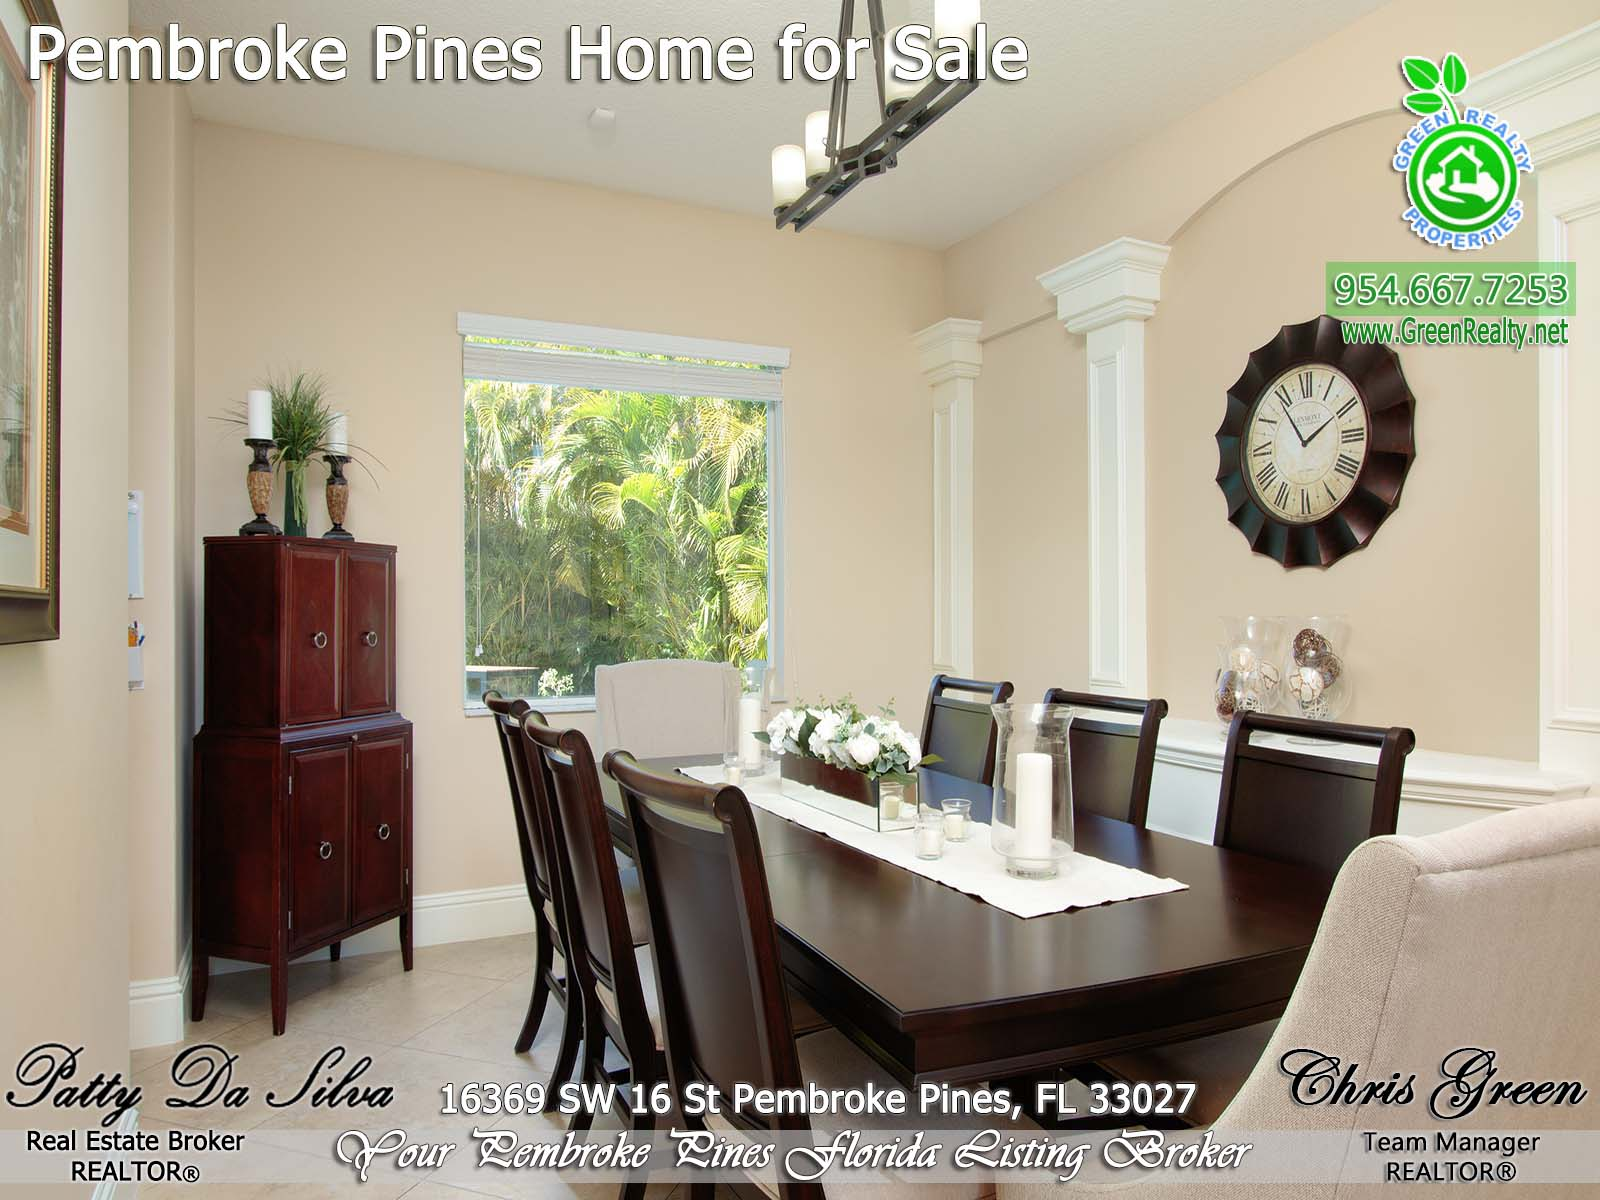 4 Pembroke Pines Realtor Broker Patty Da Silva south florida listing (6)